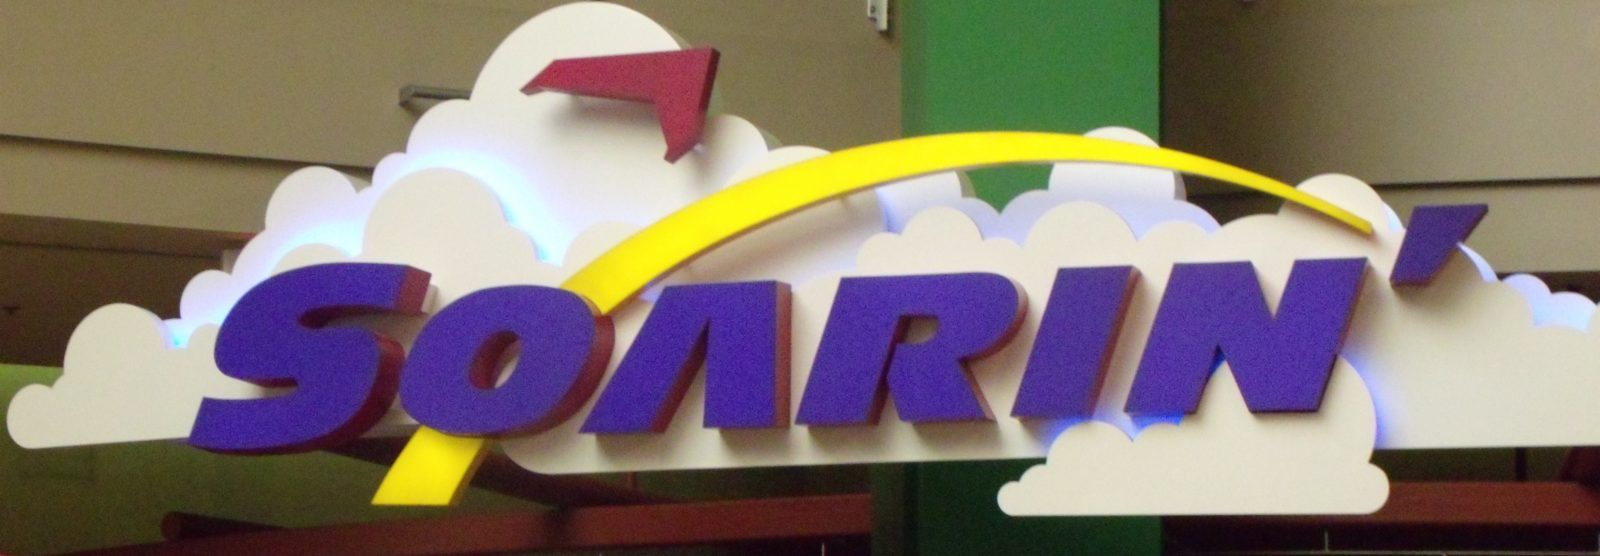 sign for Soarin' ride